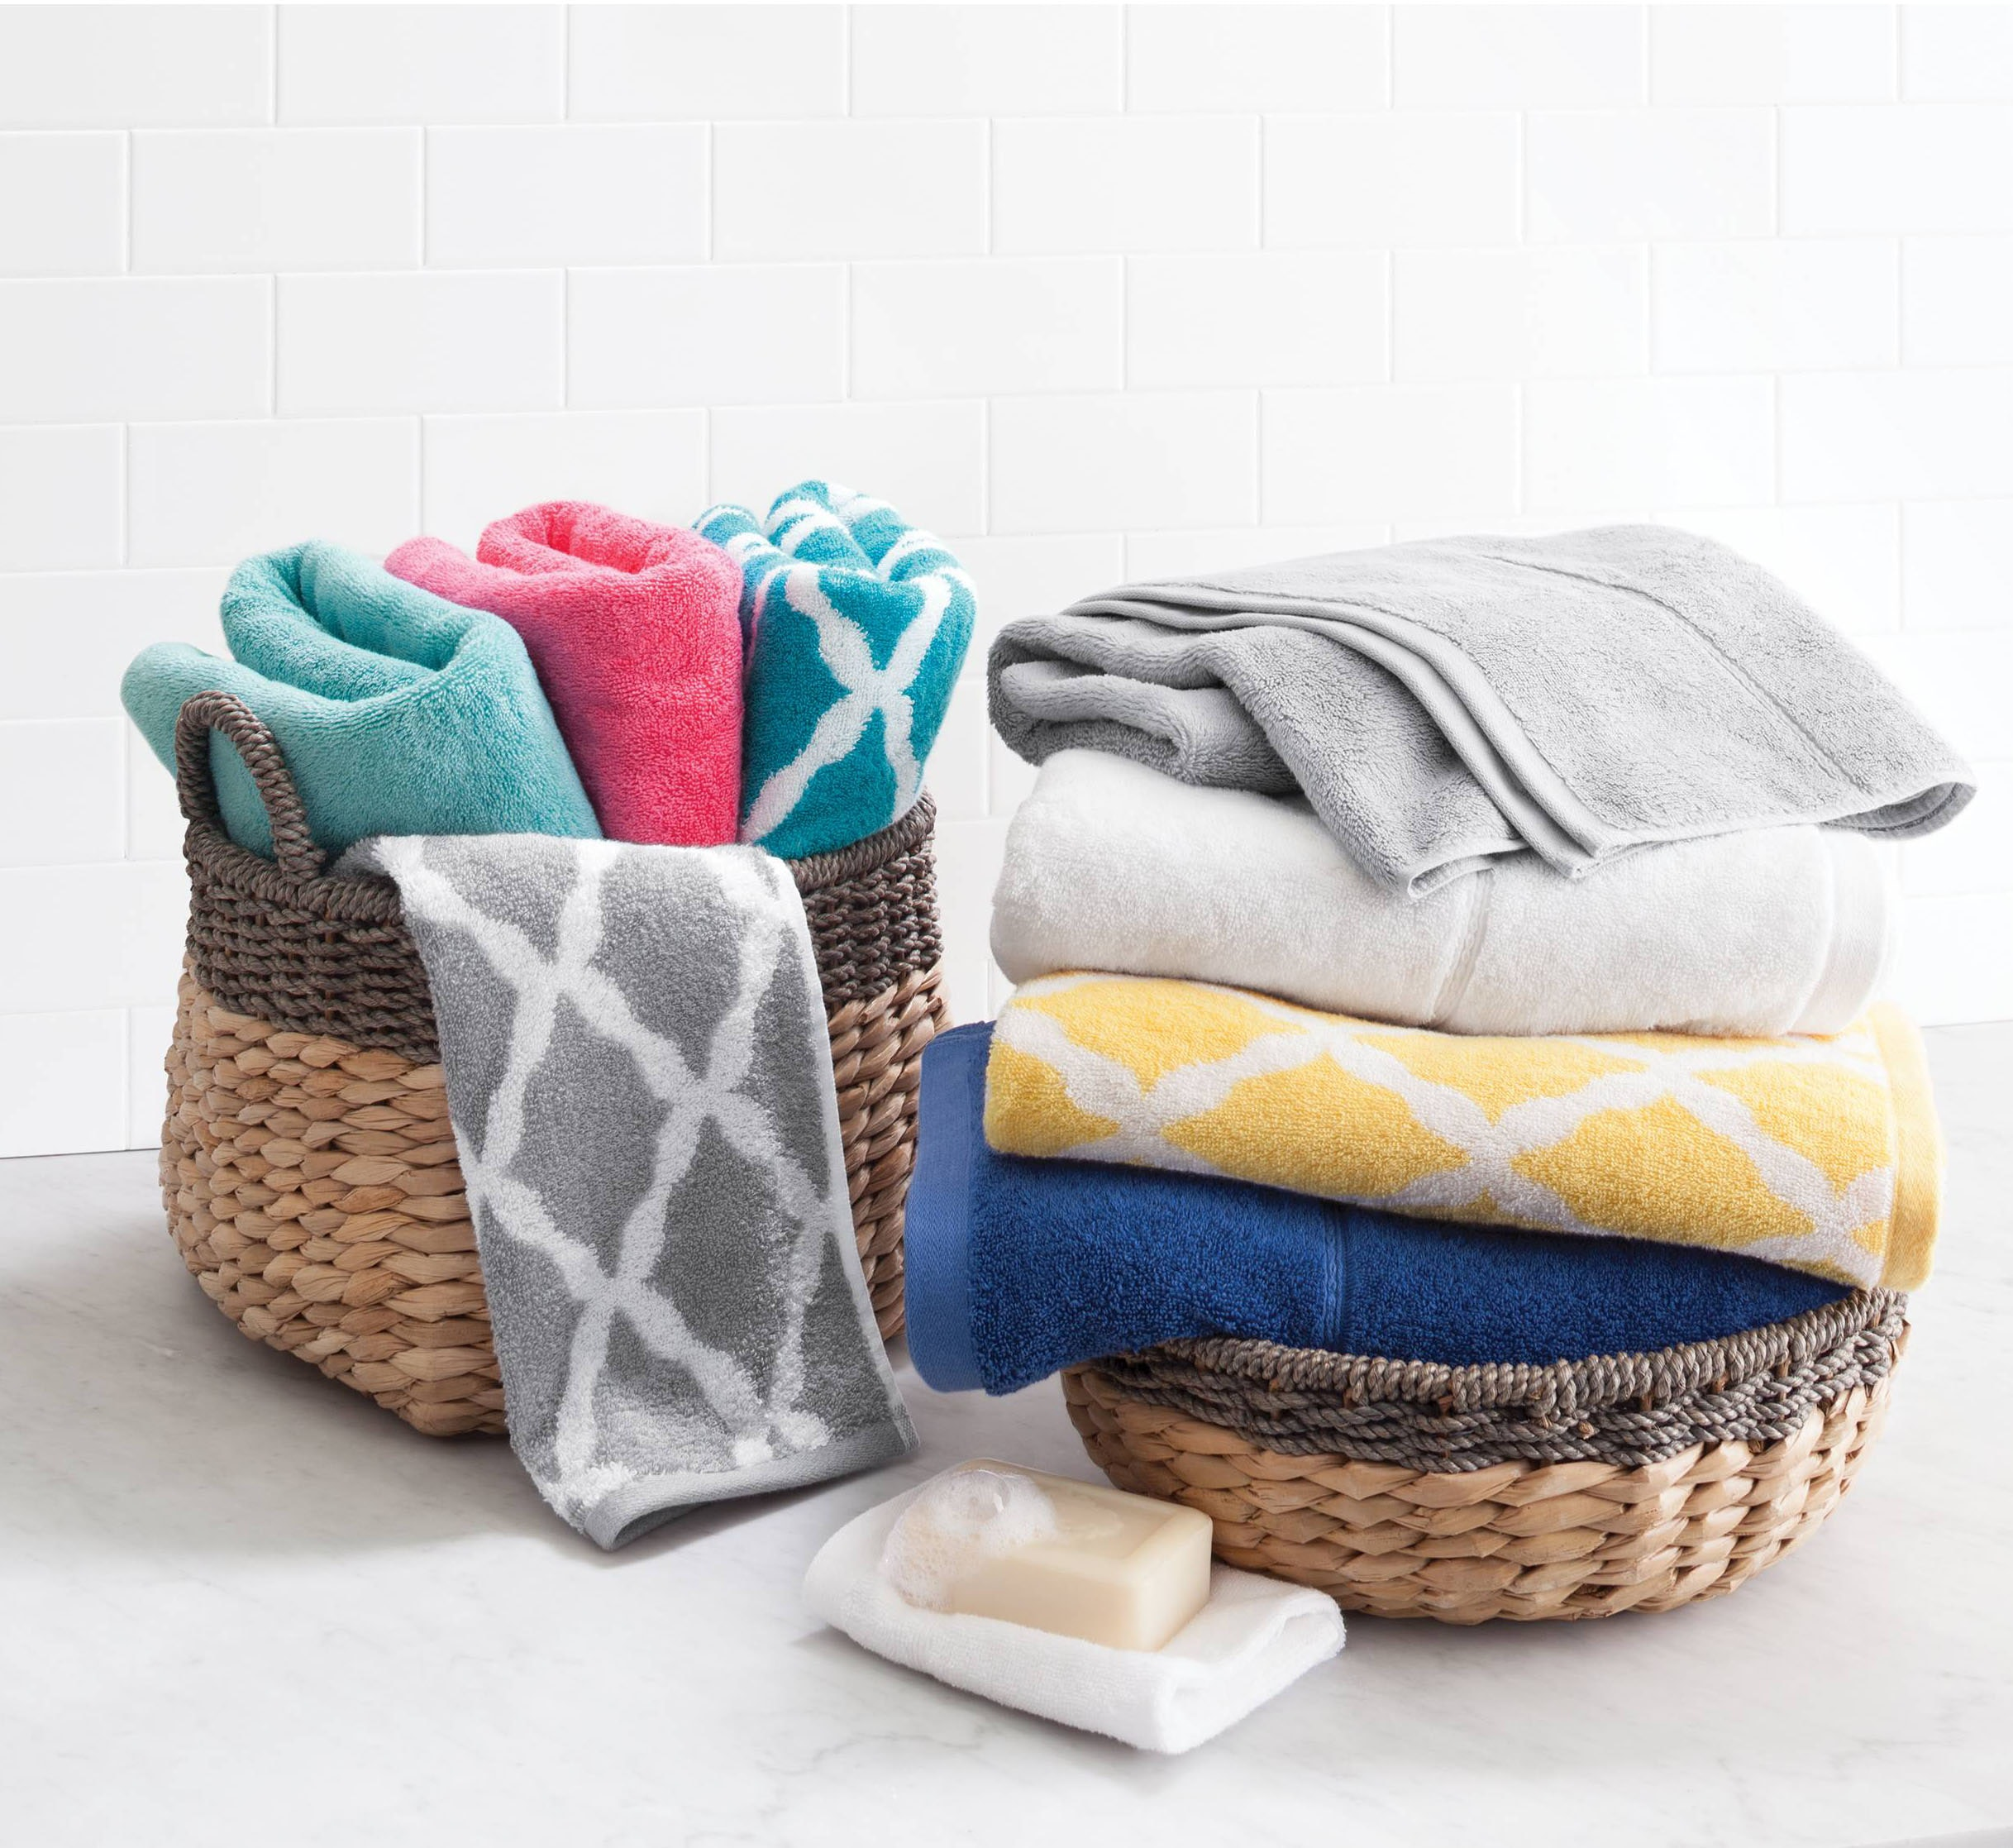 These colorful towels to brighten up your bathroom